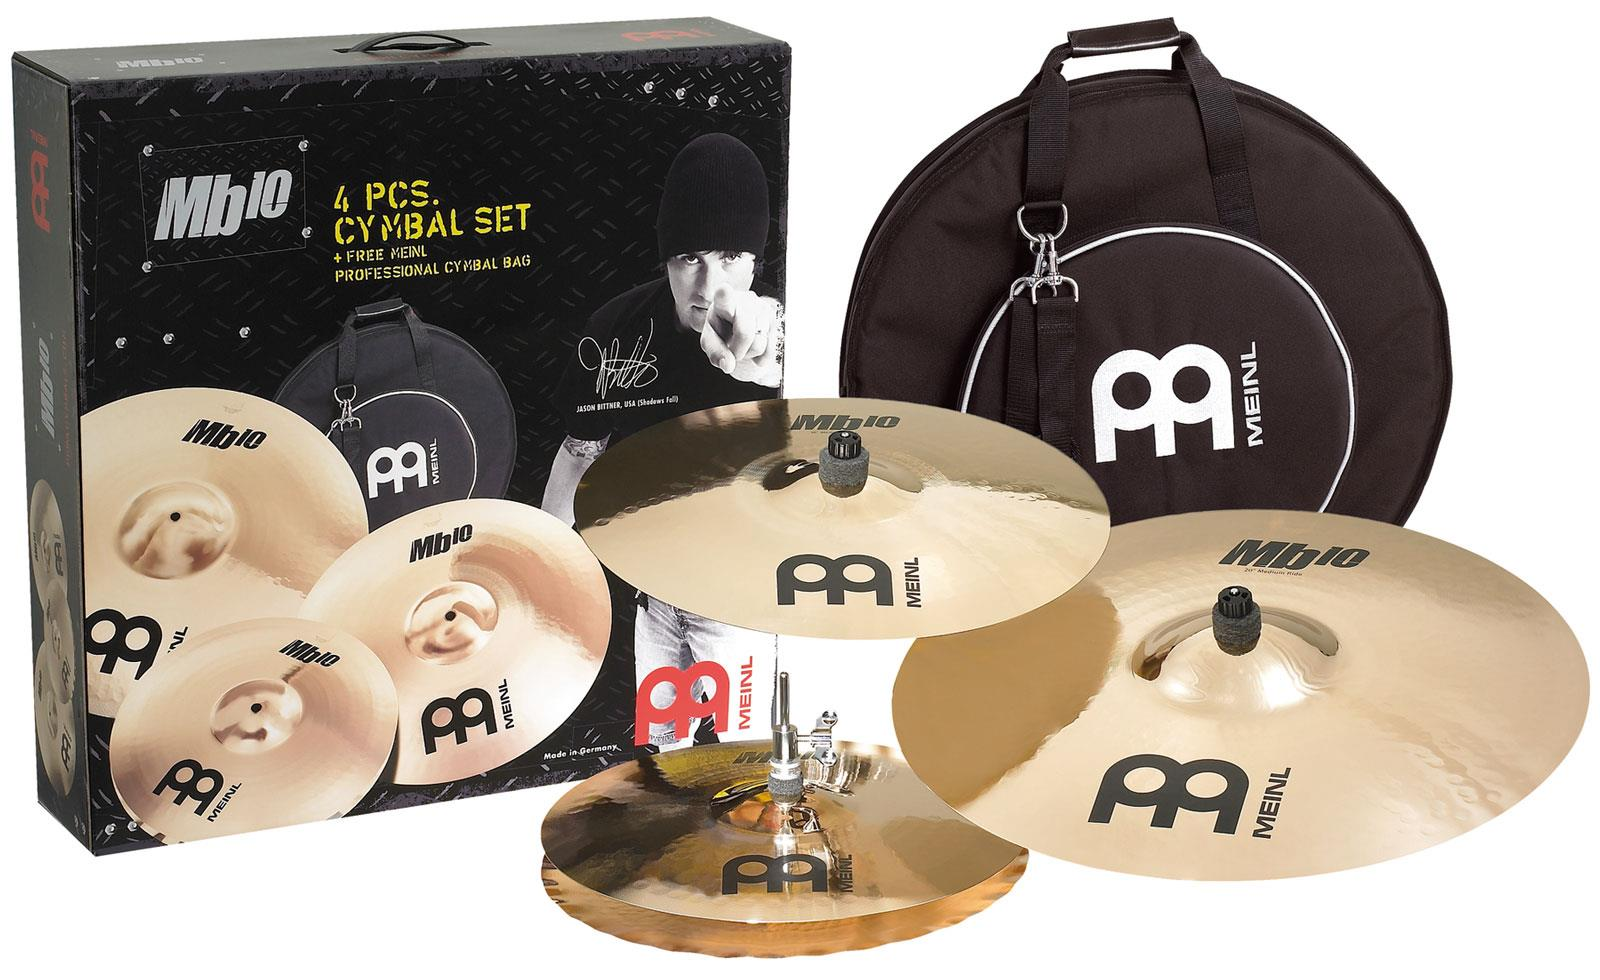 meinl mb10 cymbal set keymusic. Black Bedroom Furniture Sets. Home Design Ideas